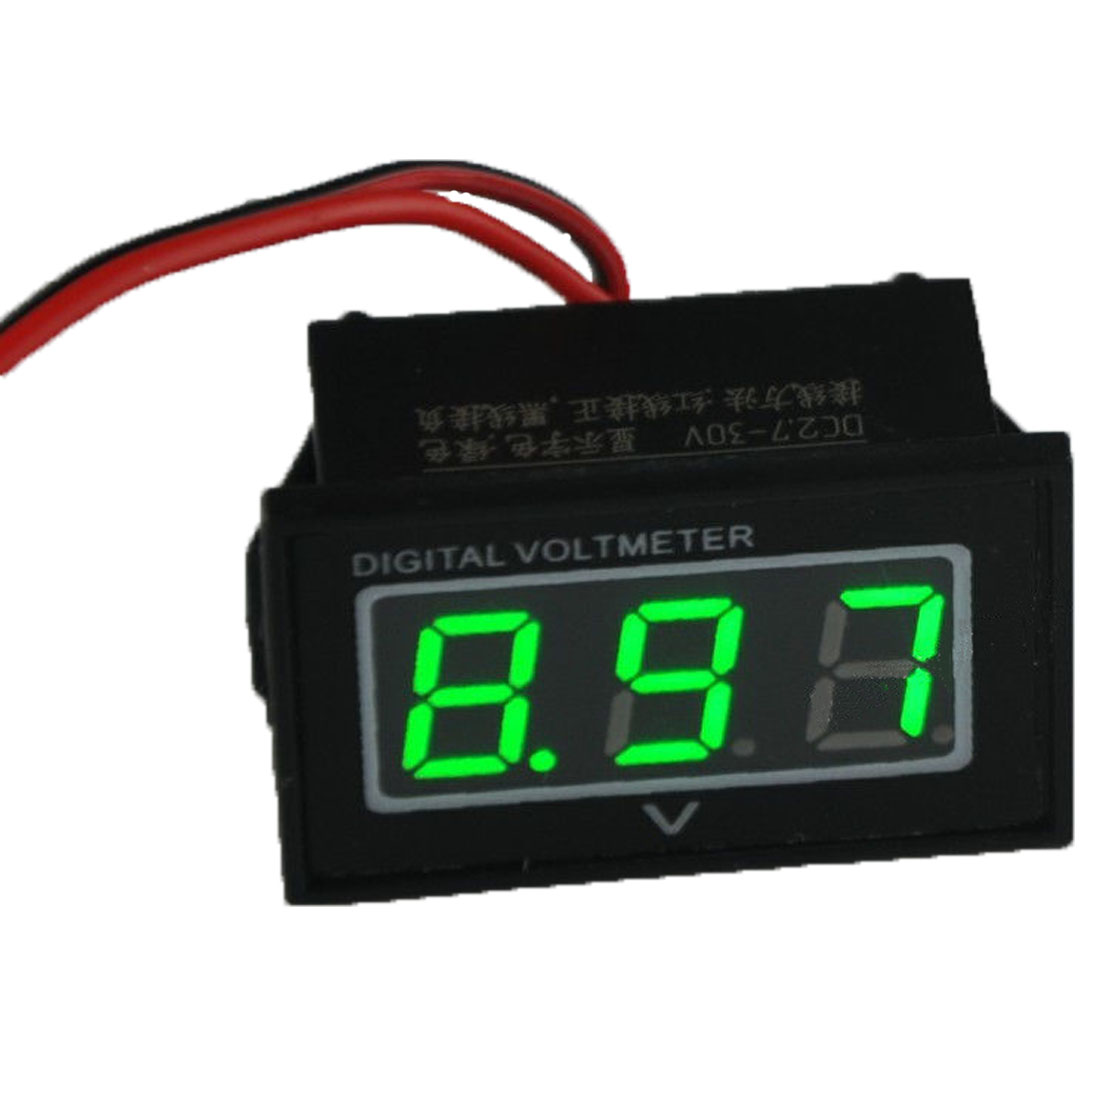 2016 Tester Car Voltmeter New Green Led Waterproof Monitor 12 Volt Battery Meter 2.7-30v For Dc Auto Gauge Digital Voltmeter(China (Mainland))